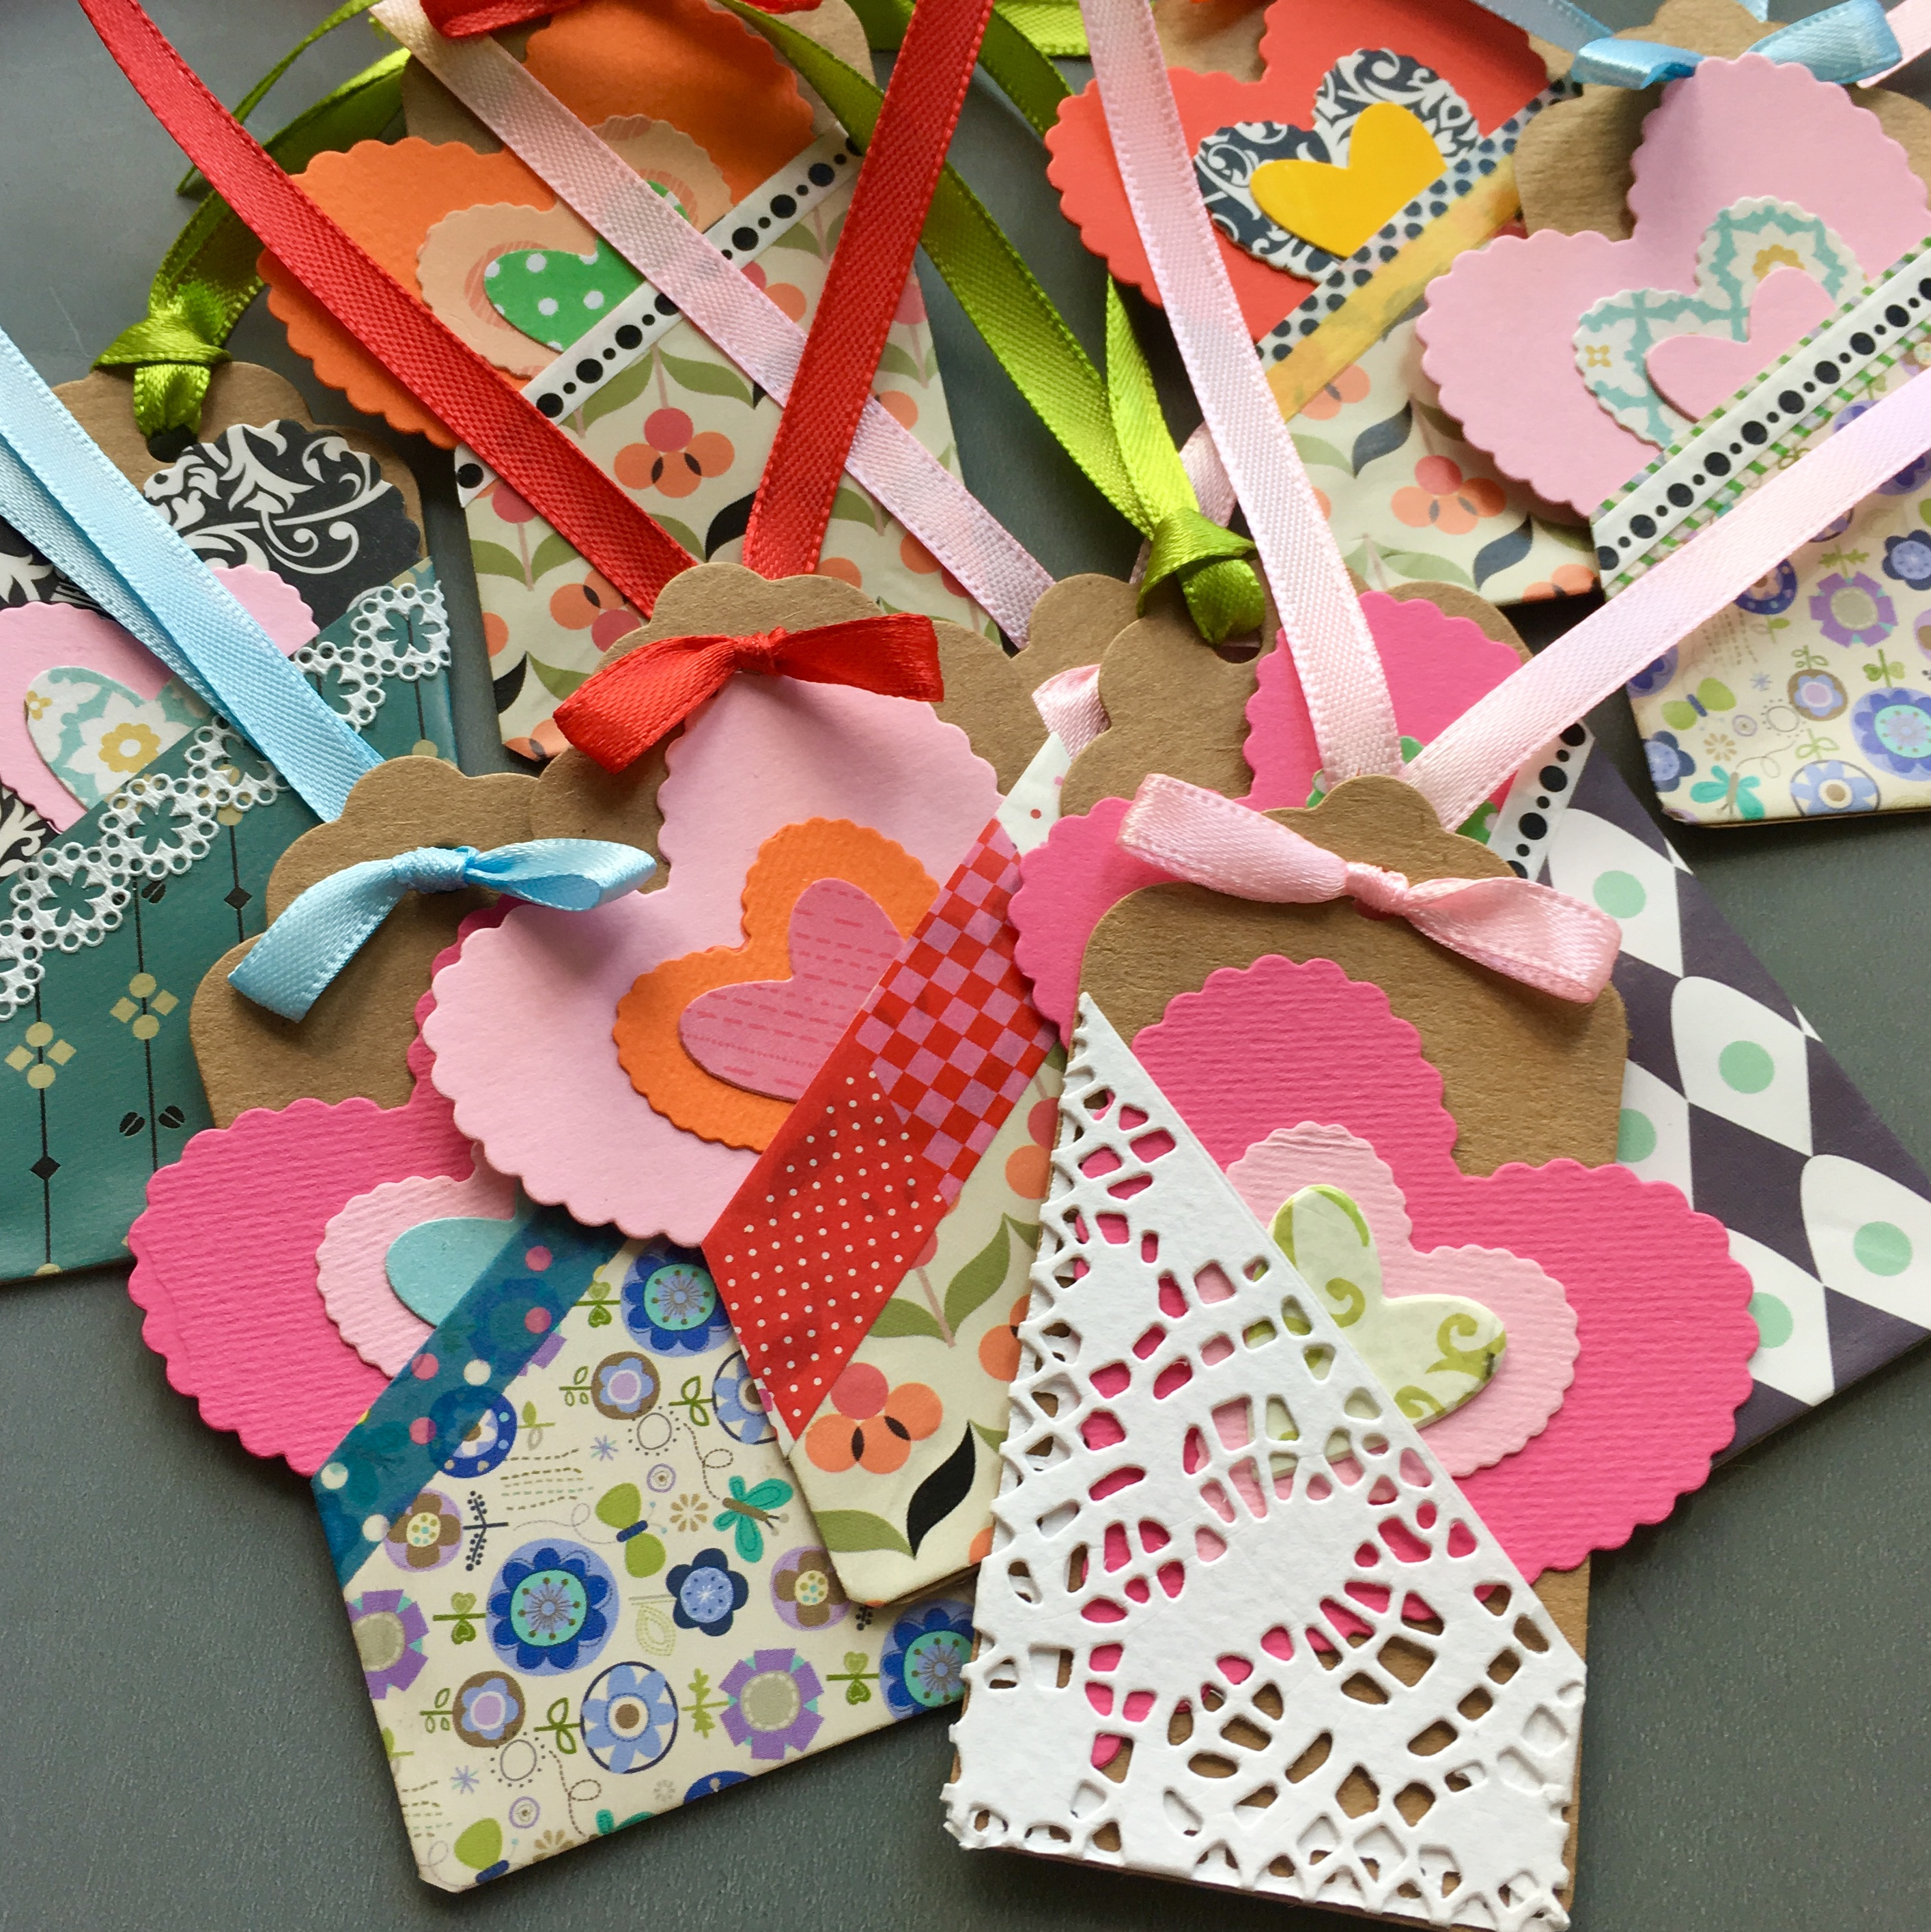 colourful figt tags with pockets and hearts in the pocket